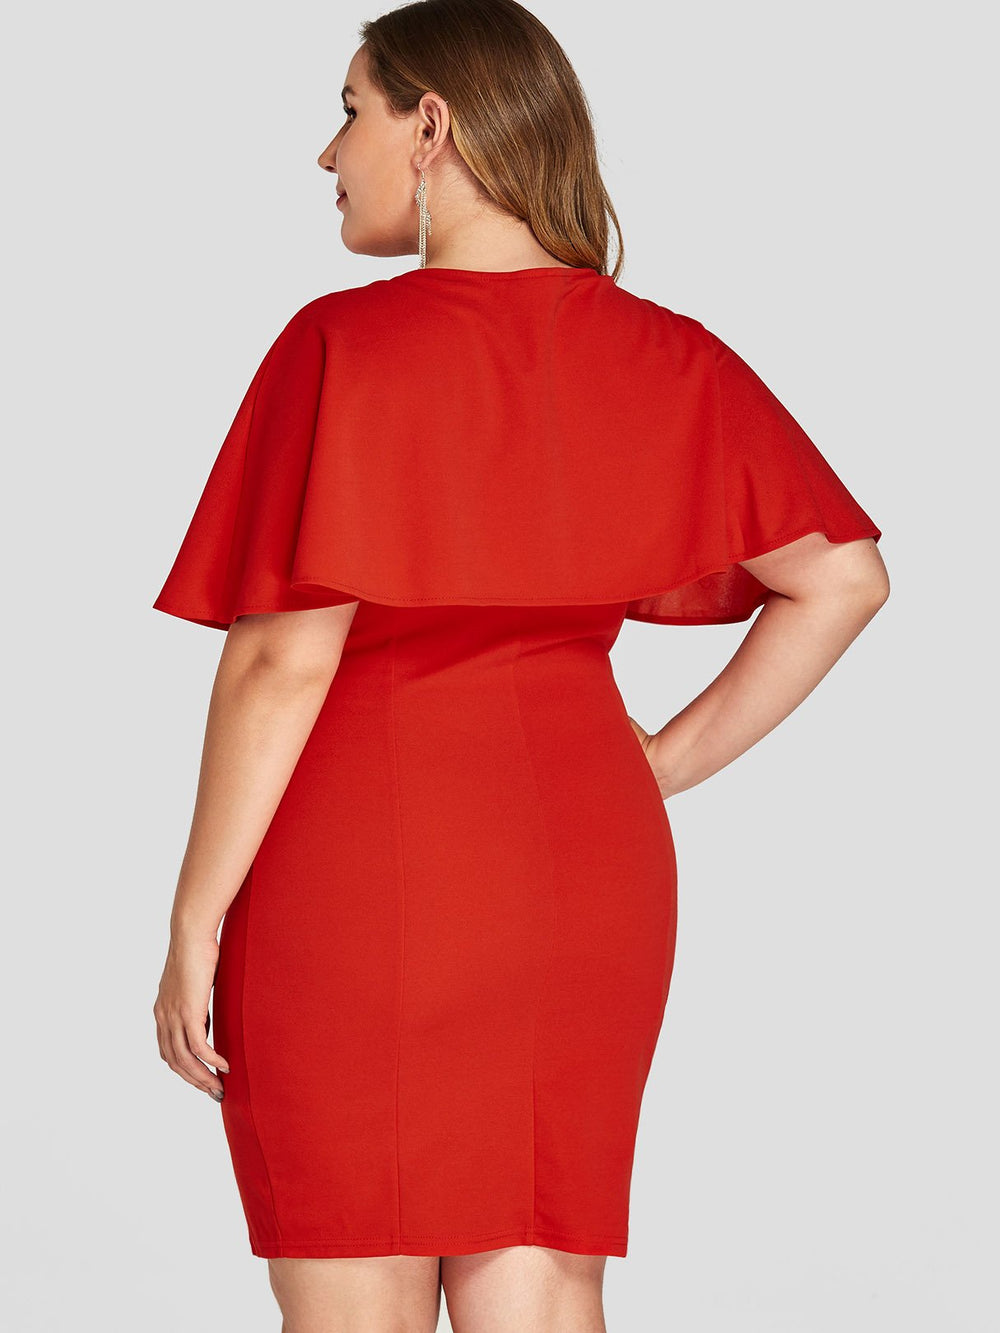 Where To Buy Plus Size Party Dresses